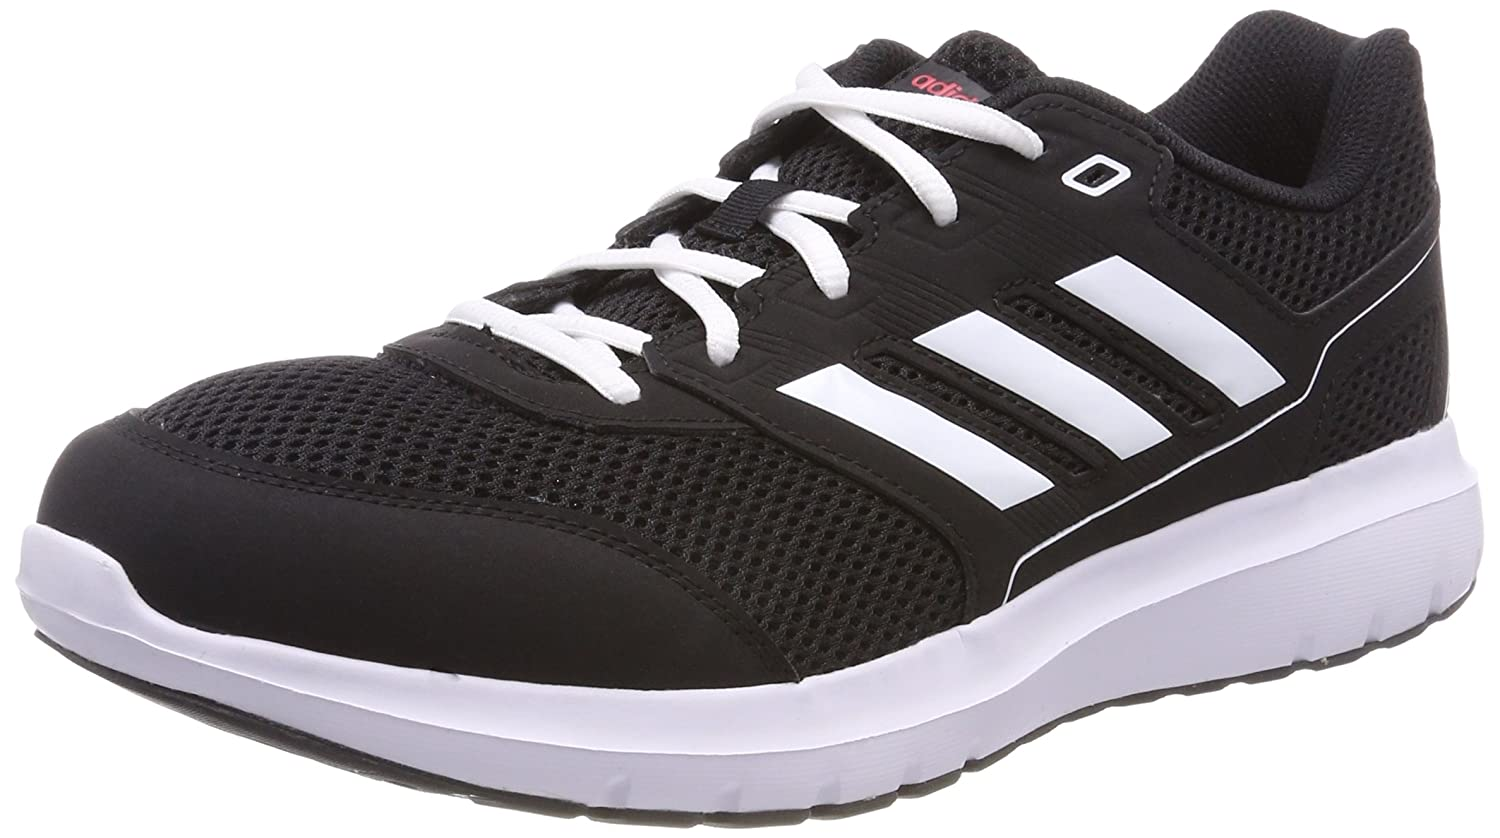 sports shoes abaa7 5c2d1 adidas Women s Duramo Lite 2.0 Running Shoes  Amazon.co.uk  Shoes   Bags